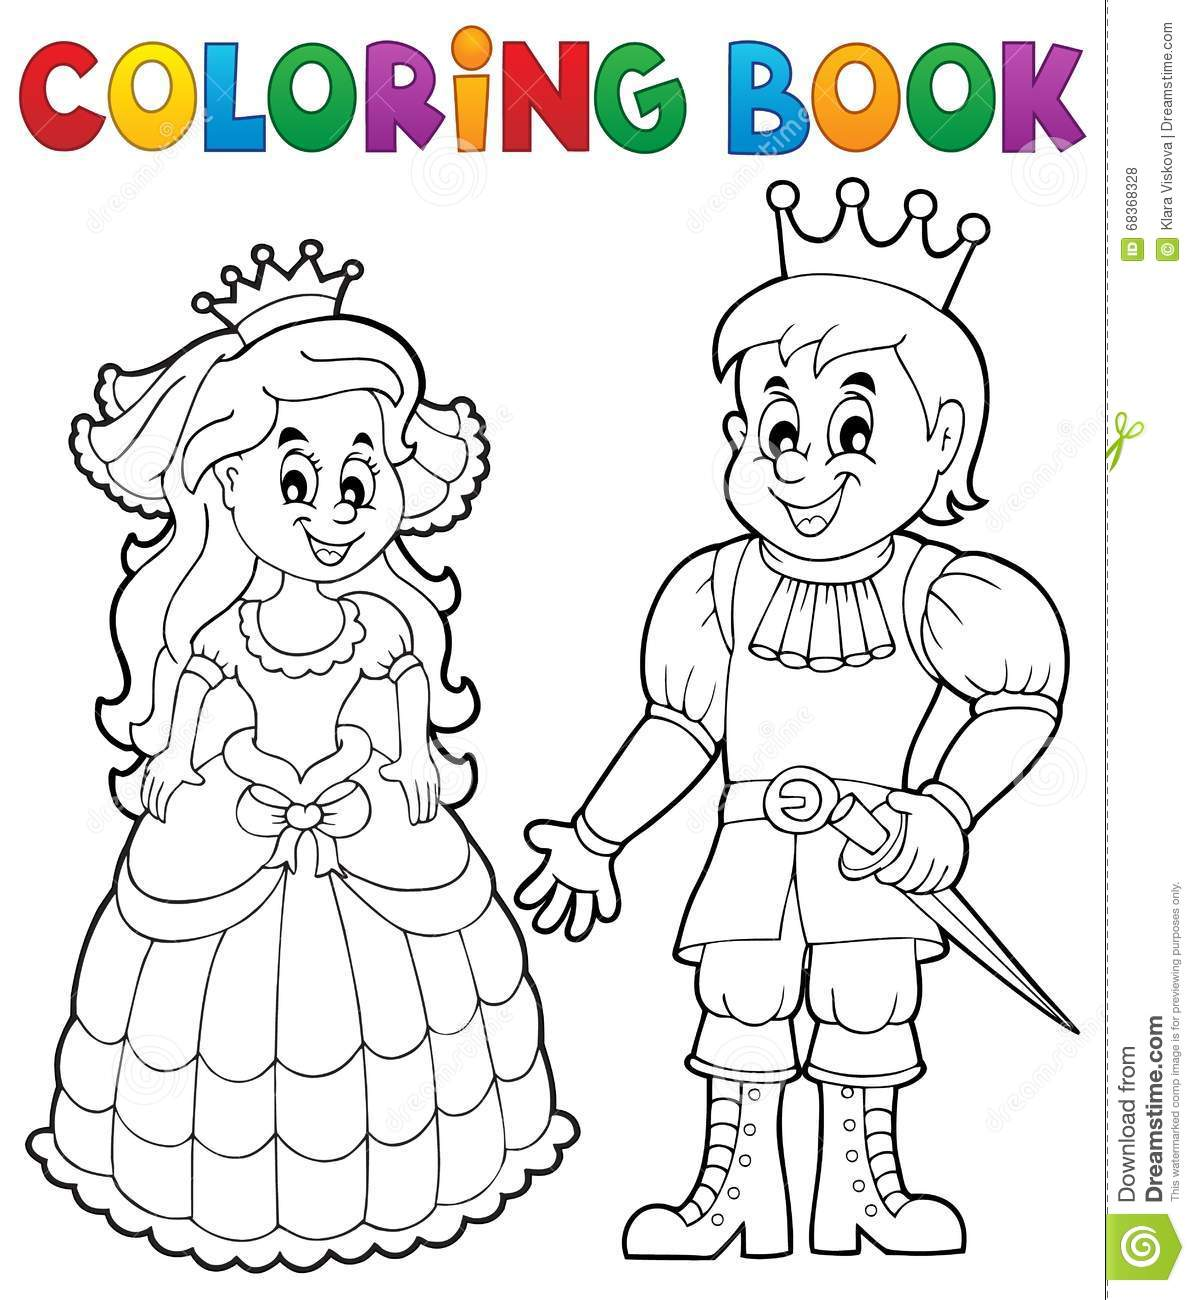 Coloring book princess - Coloring Book Princess And Prince